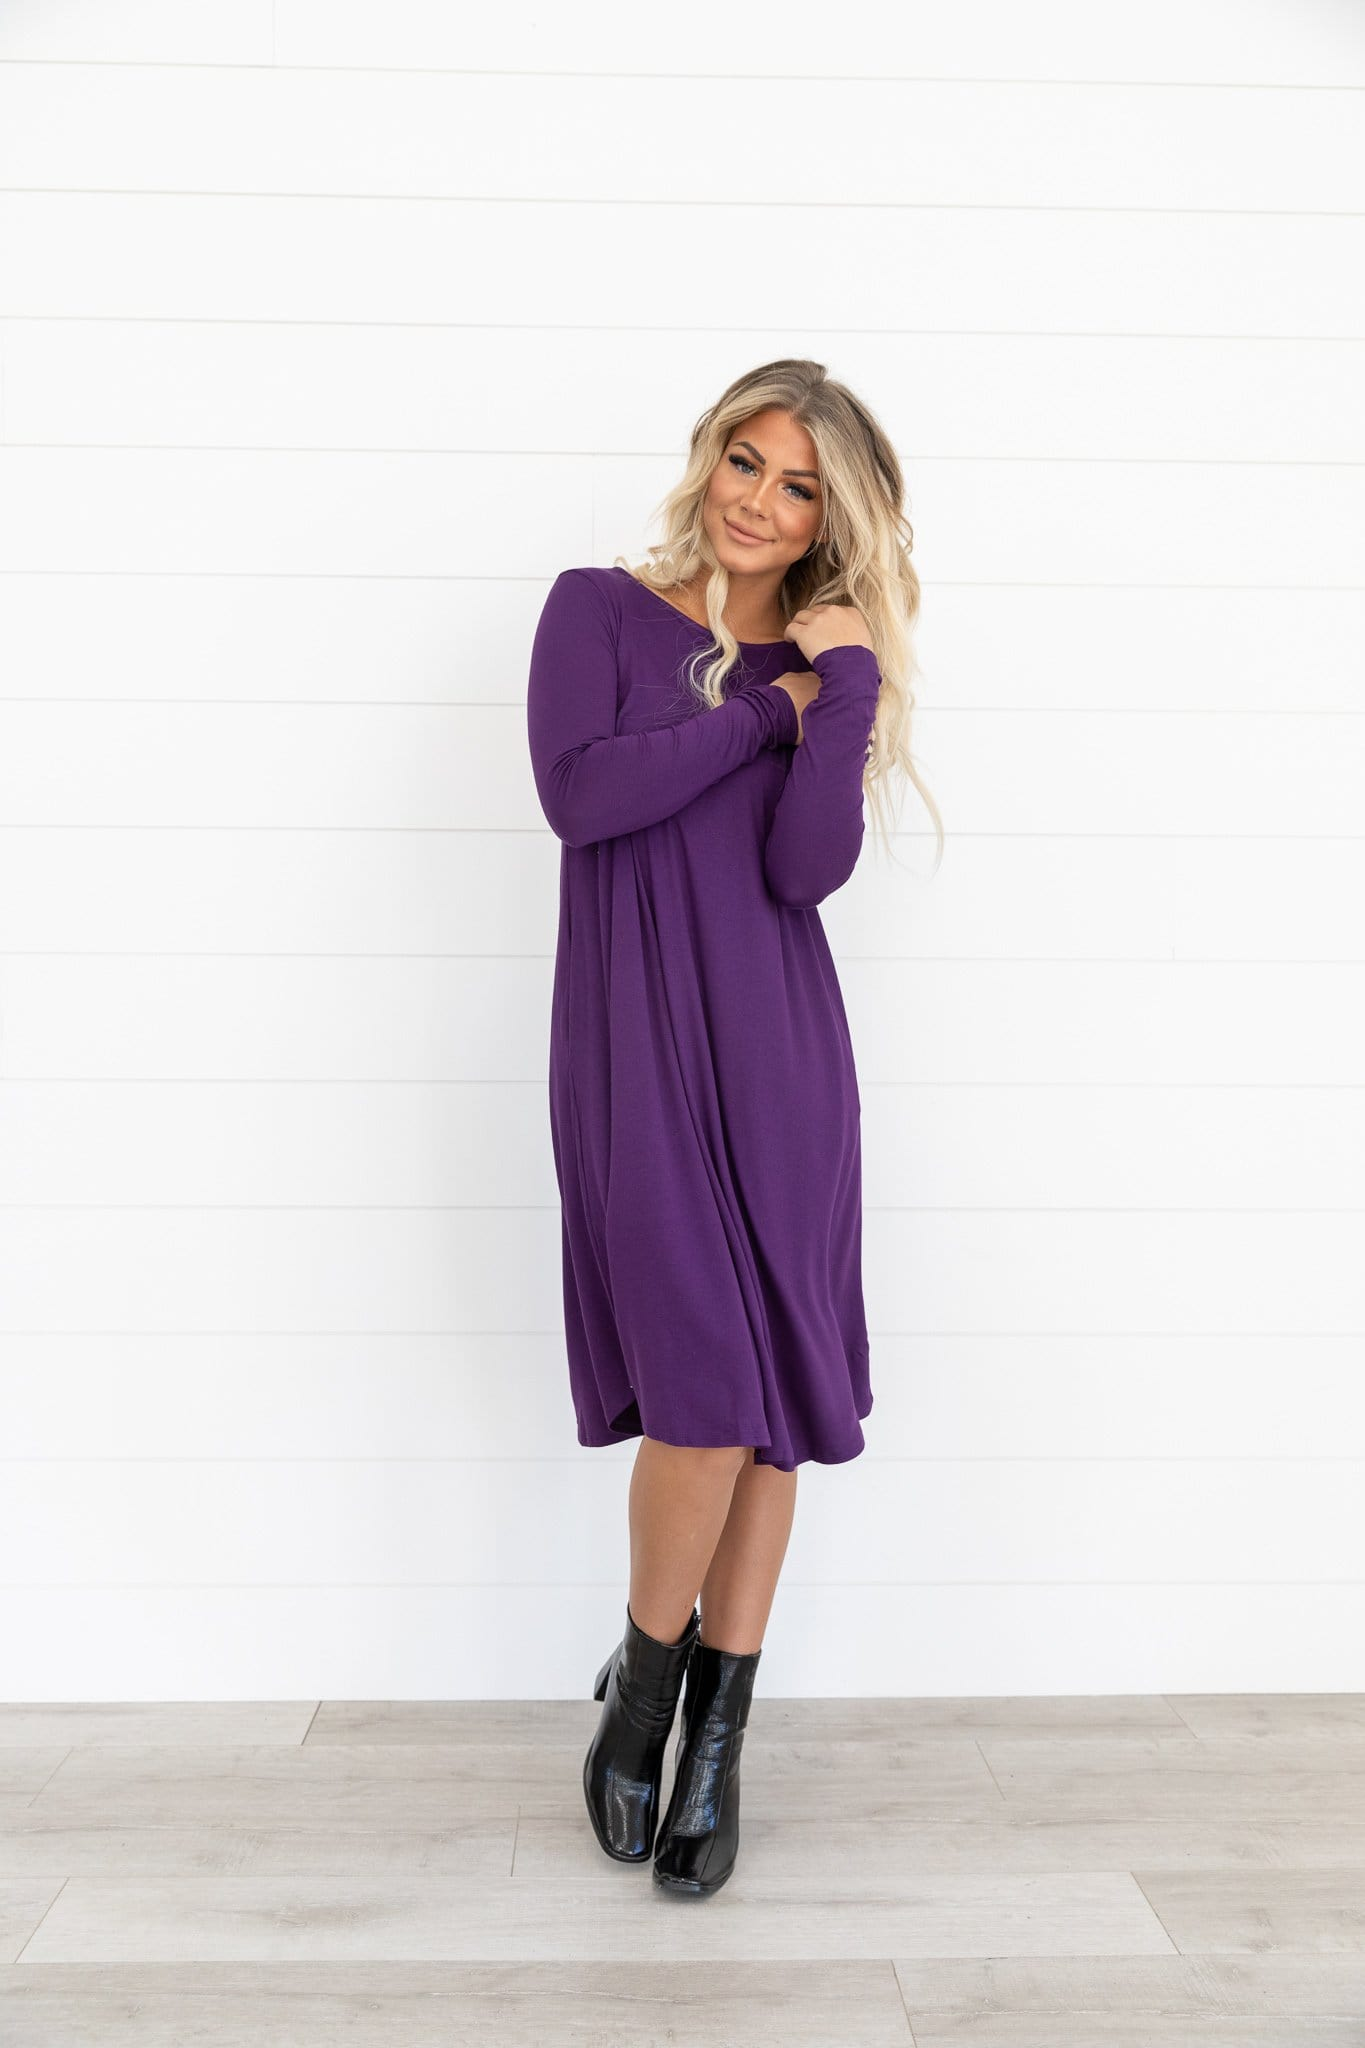 The Tanna Swing Dress in Boysenberry and Dark Purple